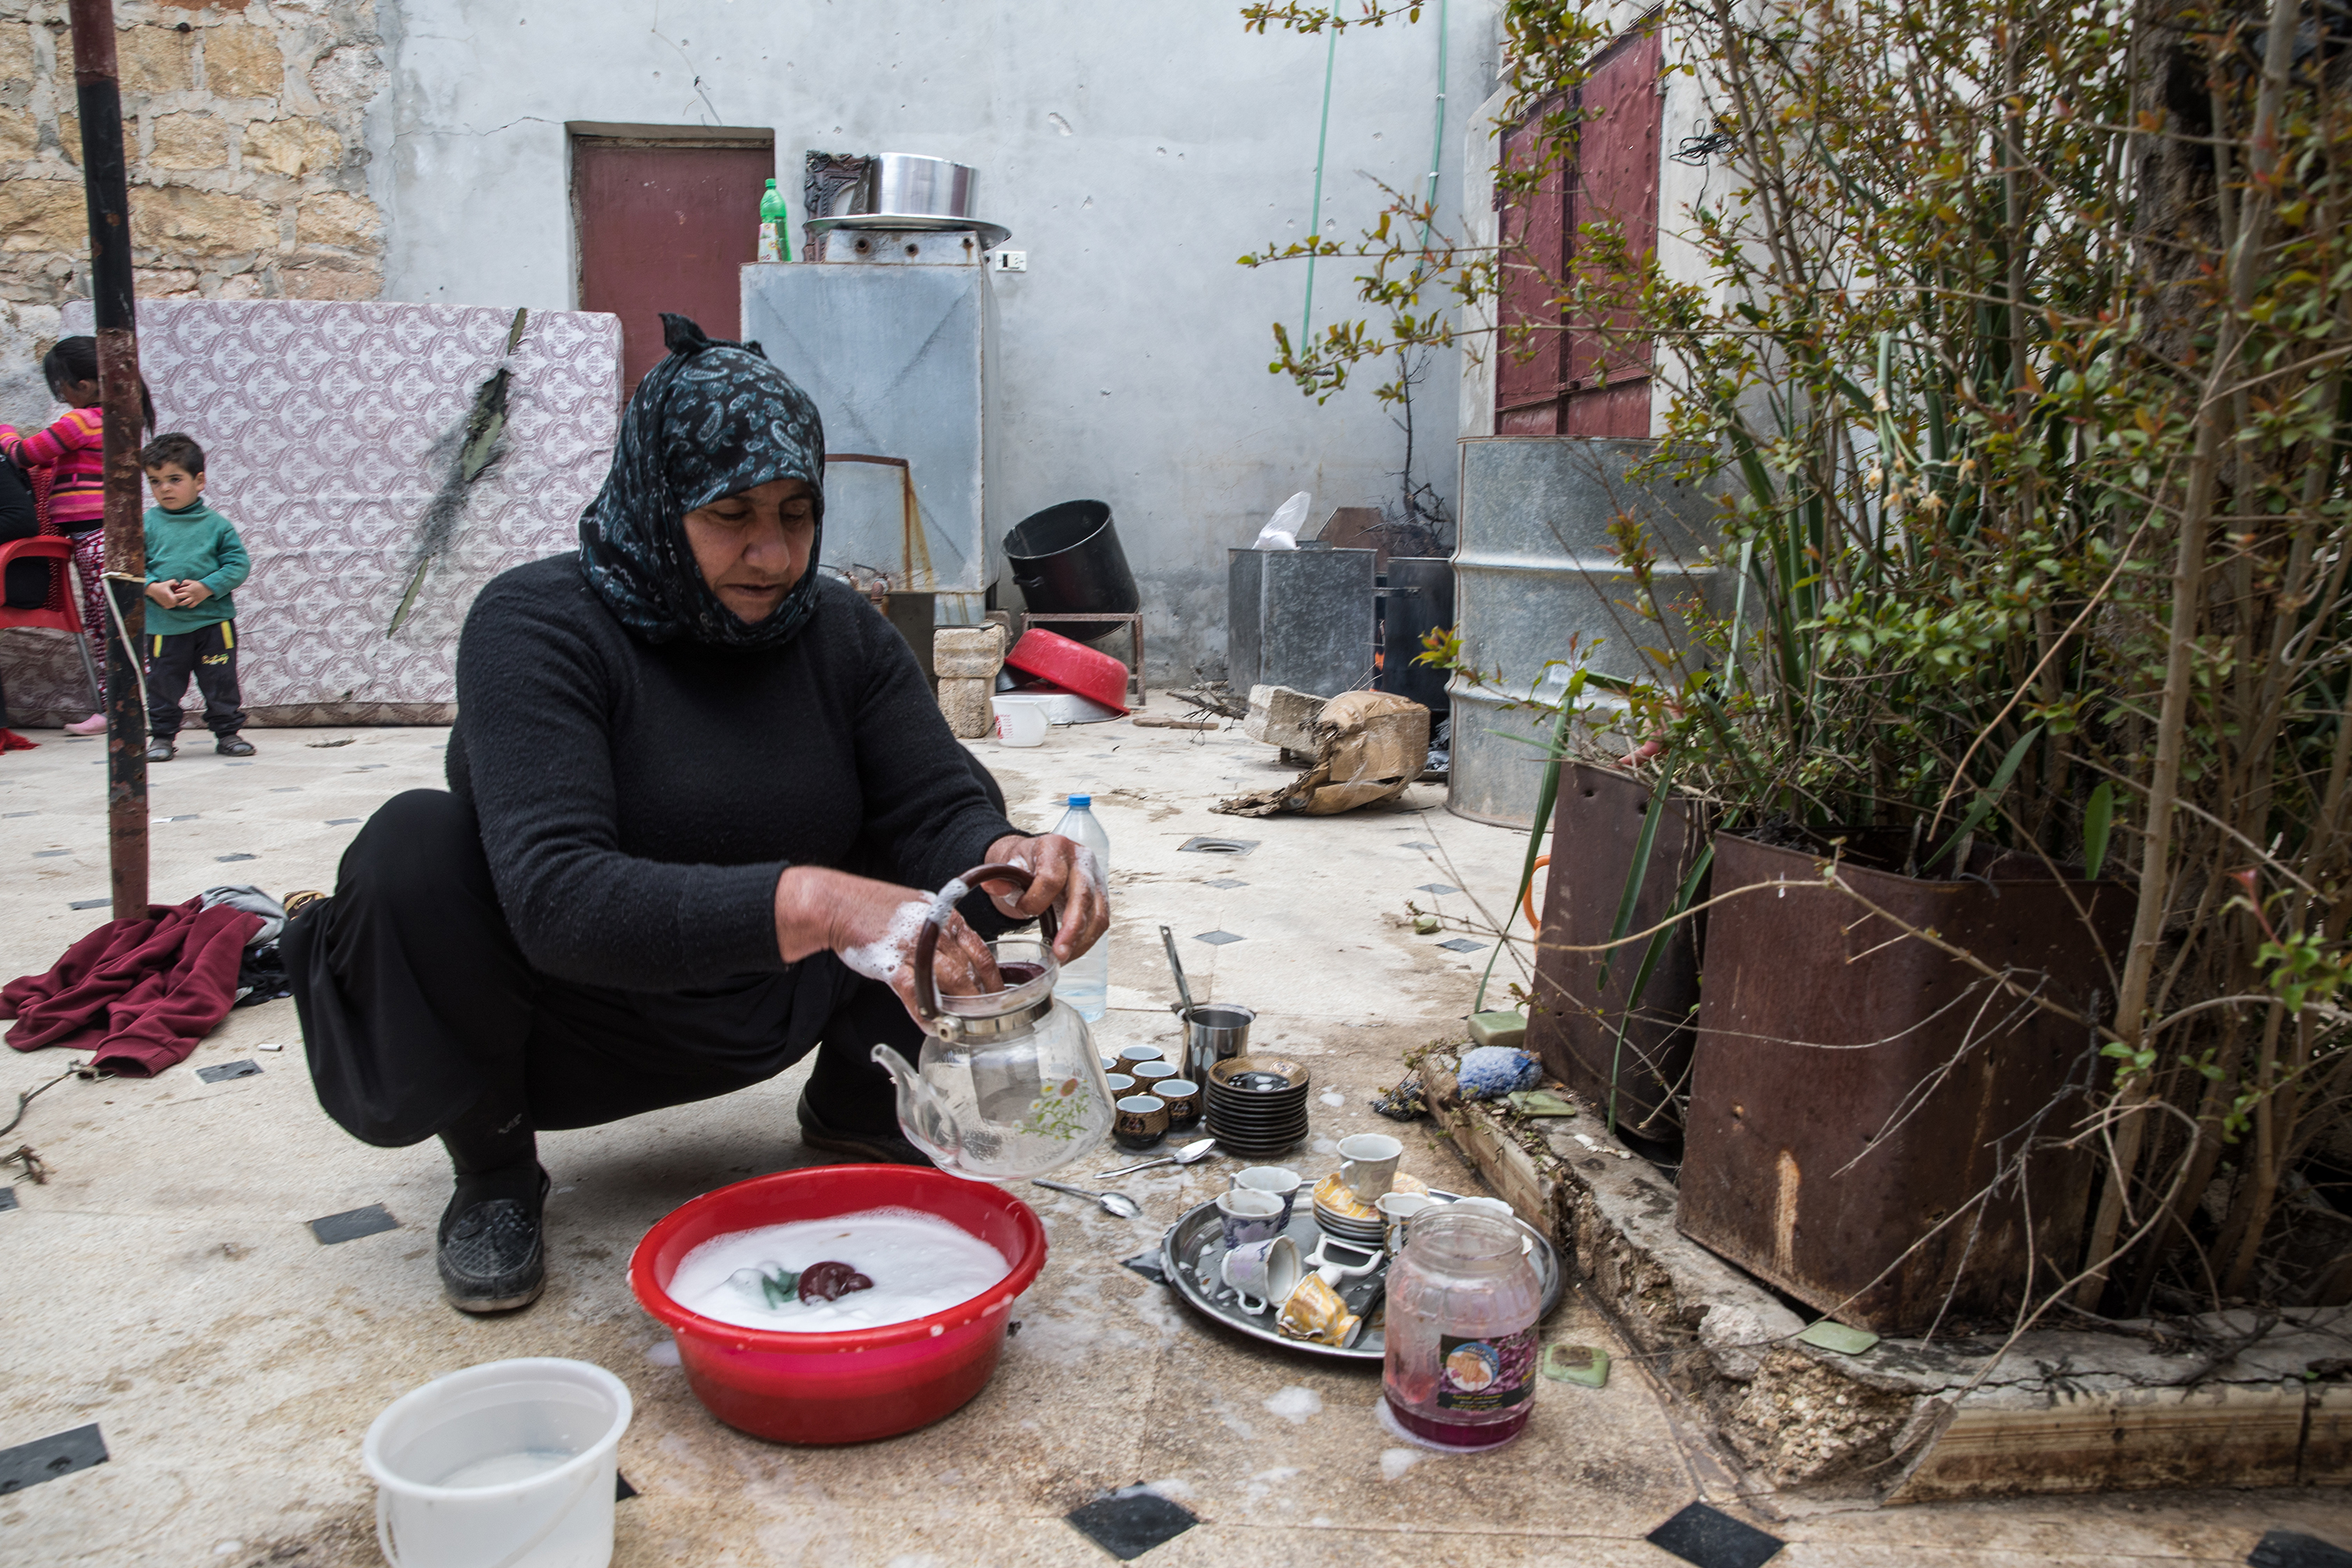 A woman washes dishes inside the remnant of a building with a makeshift home around her